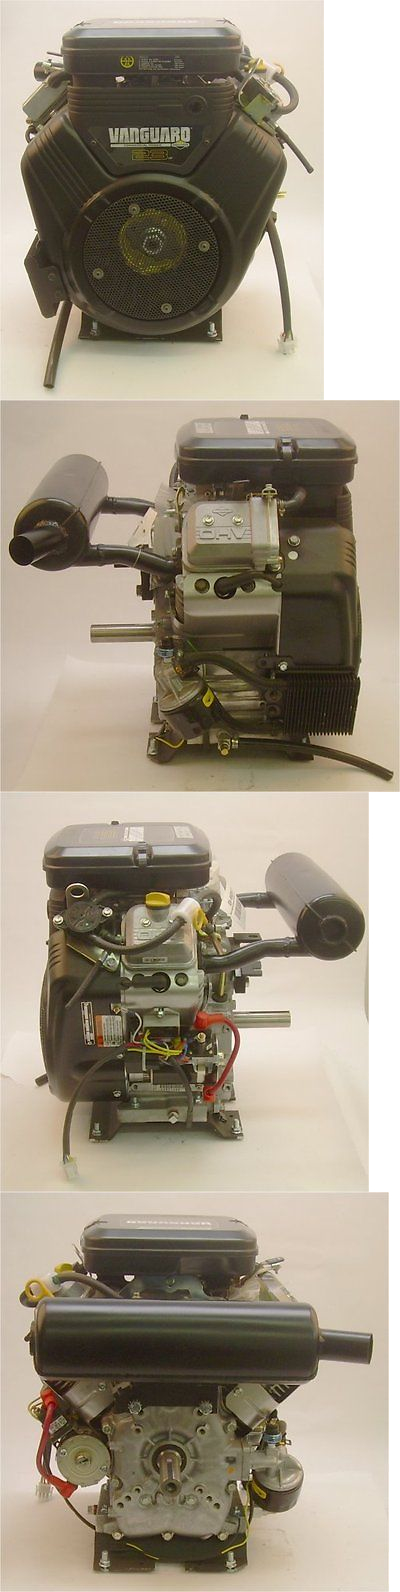 Engines Multi-Purpose 79670: 23Hp Briggs Vanguard Engine For